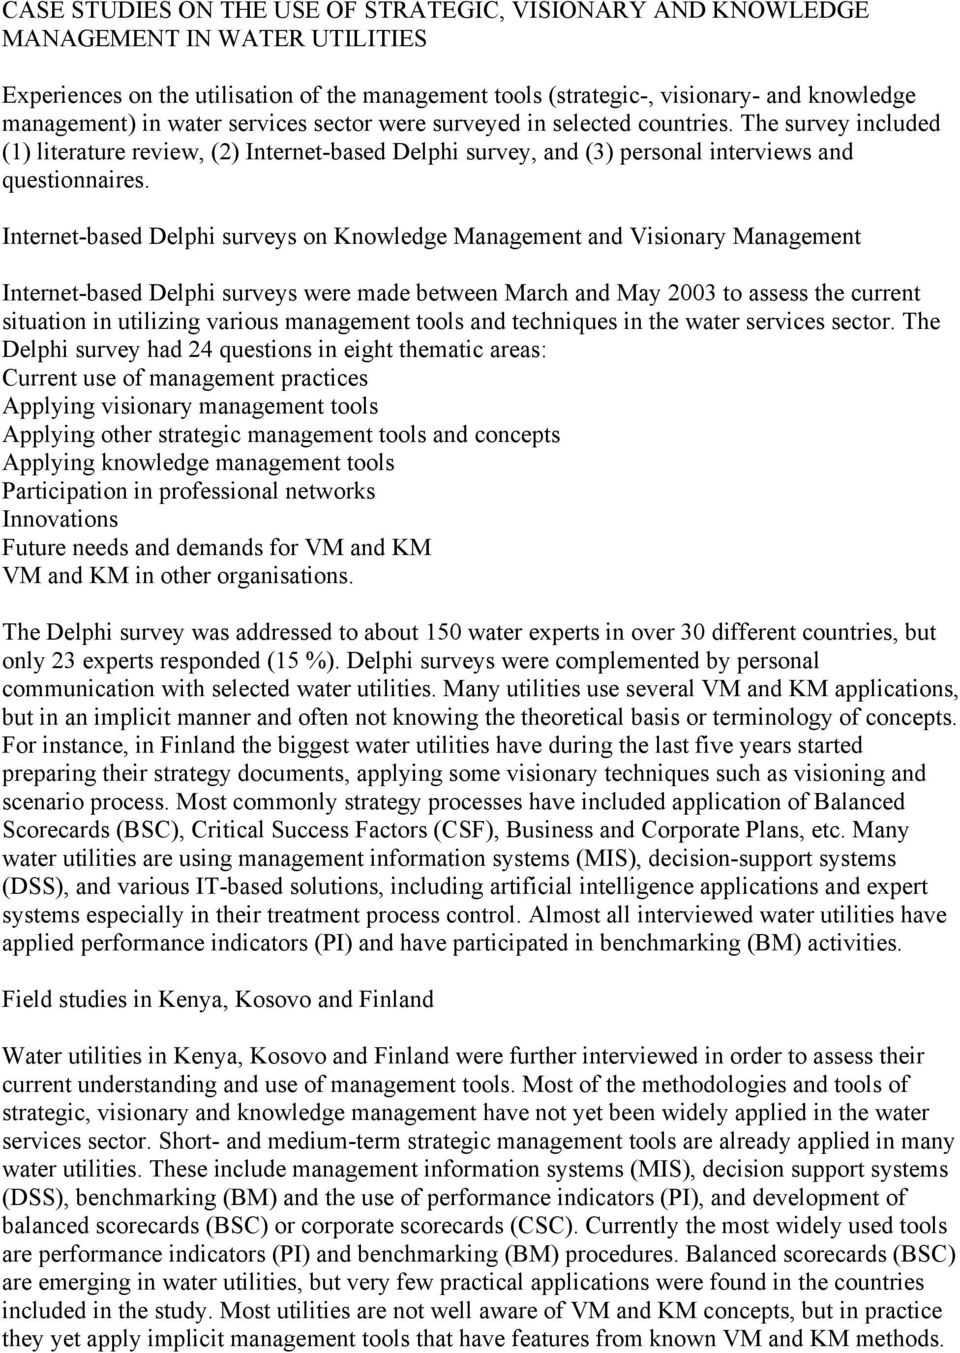 Internet-based Delphi surveys on Knowledge Management and Visionary Management Internet-based Delphi surveys were made between March and May 2003 to assess the current situation in utilizing various